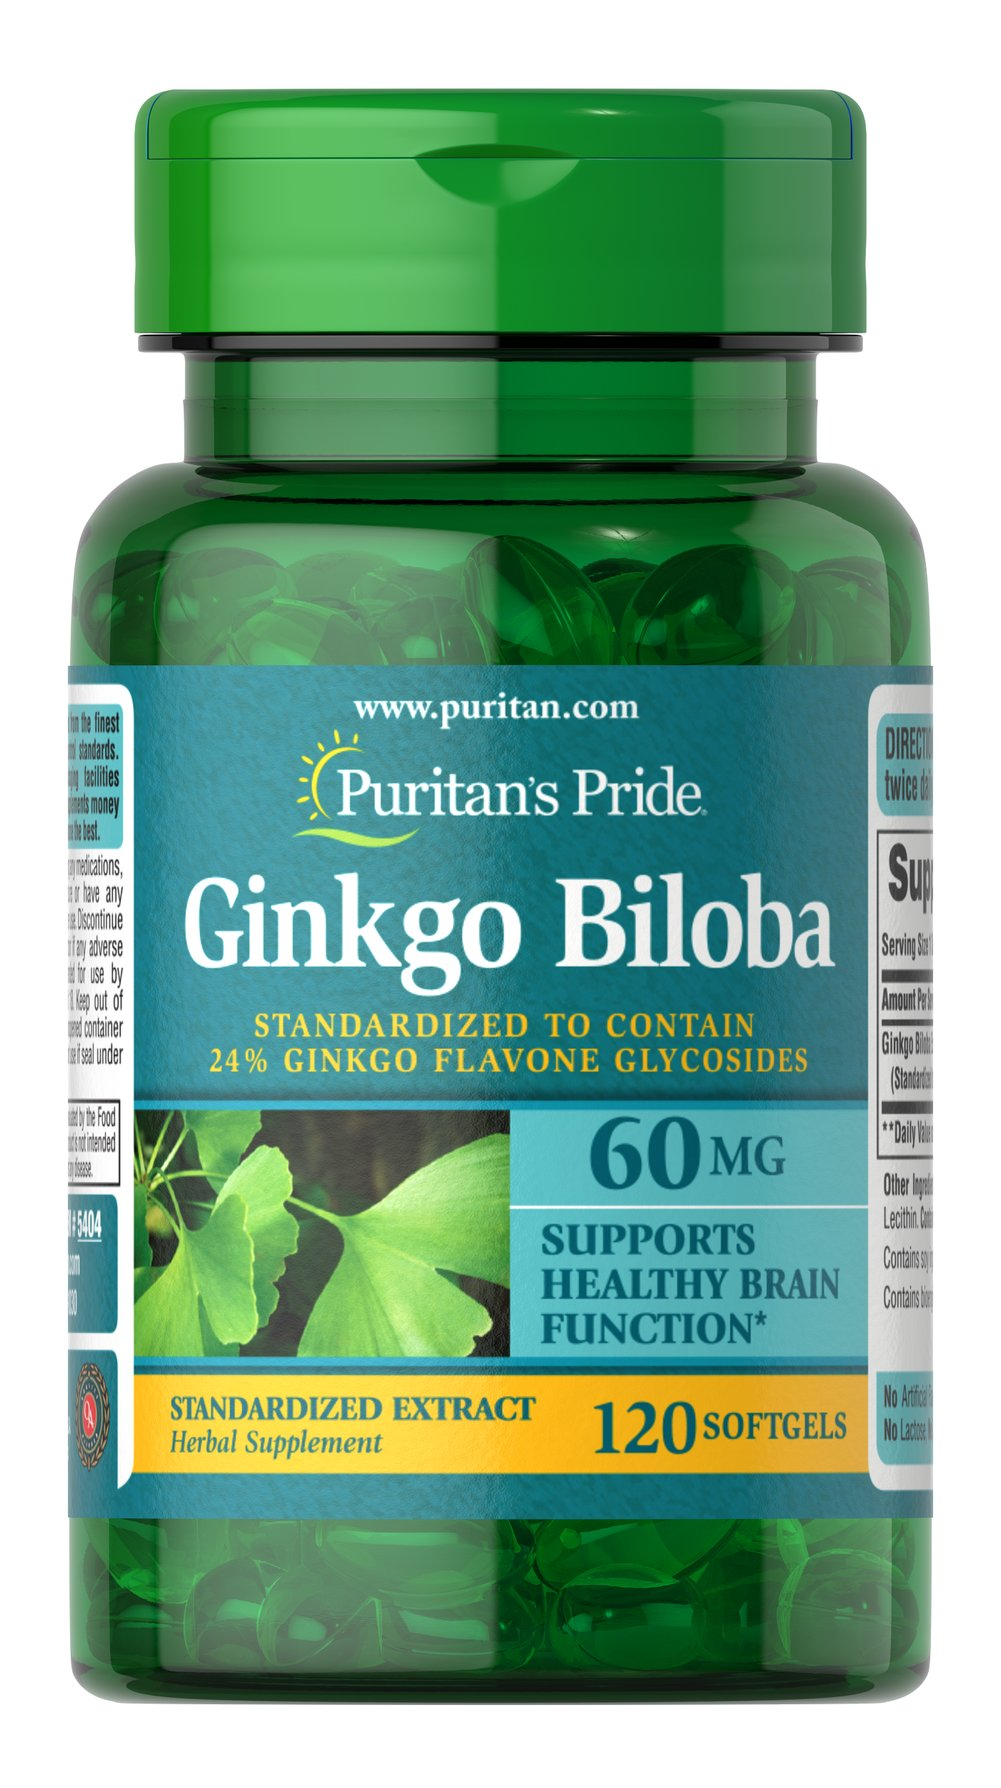 Ginkgo Biloba 60 mg <p>Ginkgo helps to maintain peripheral circulation to the extremities.** In addition, Ginkgo helps support memory, especially occasional mild memory problems associated with aging.** Our Ginkgo Biloba consists of high-quality herbs standardized to contain 24% Ginkgo Flavone Glycosides</p> 120 Softgels 60 mg $12.99